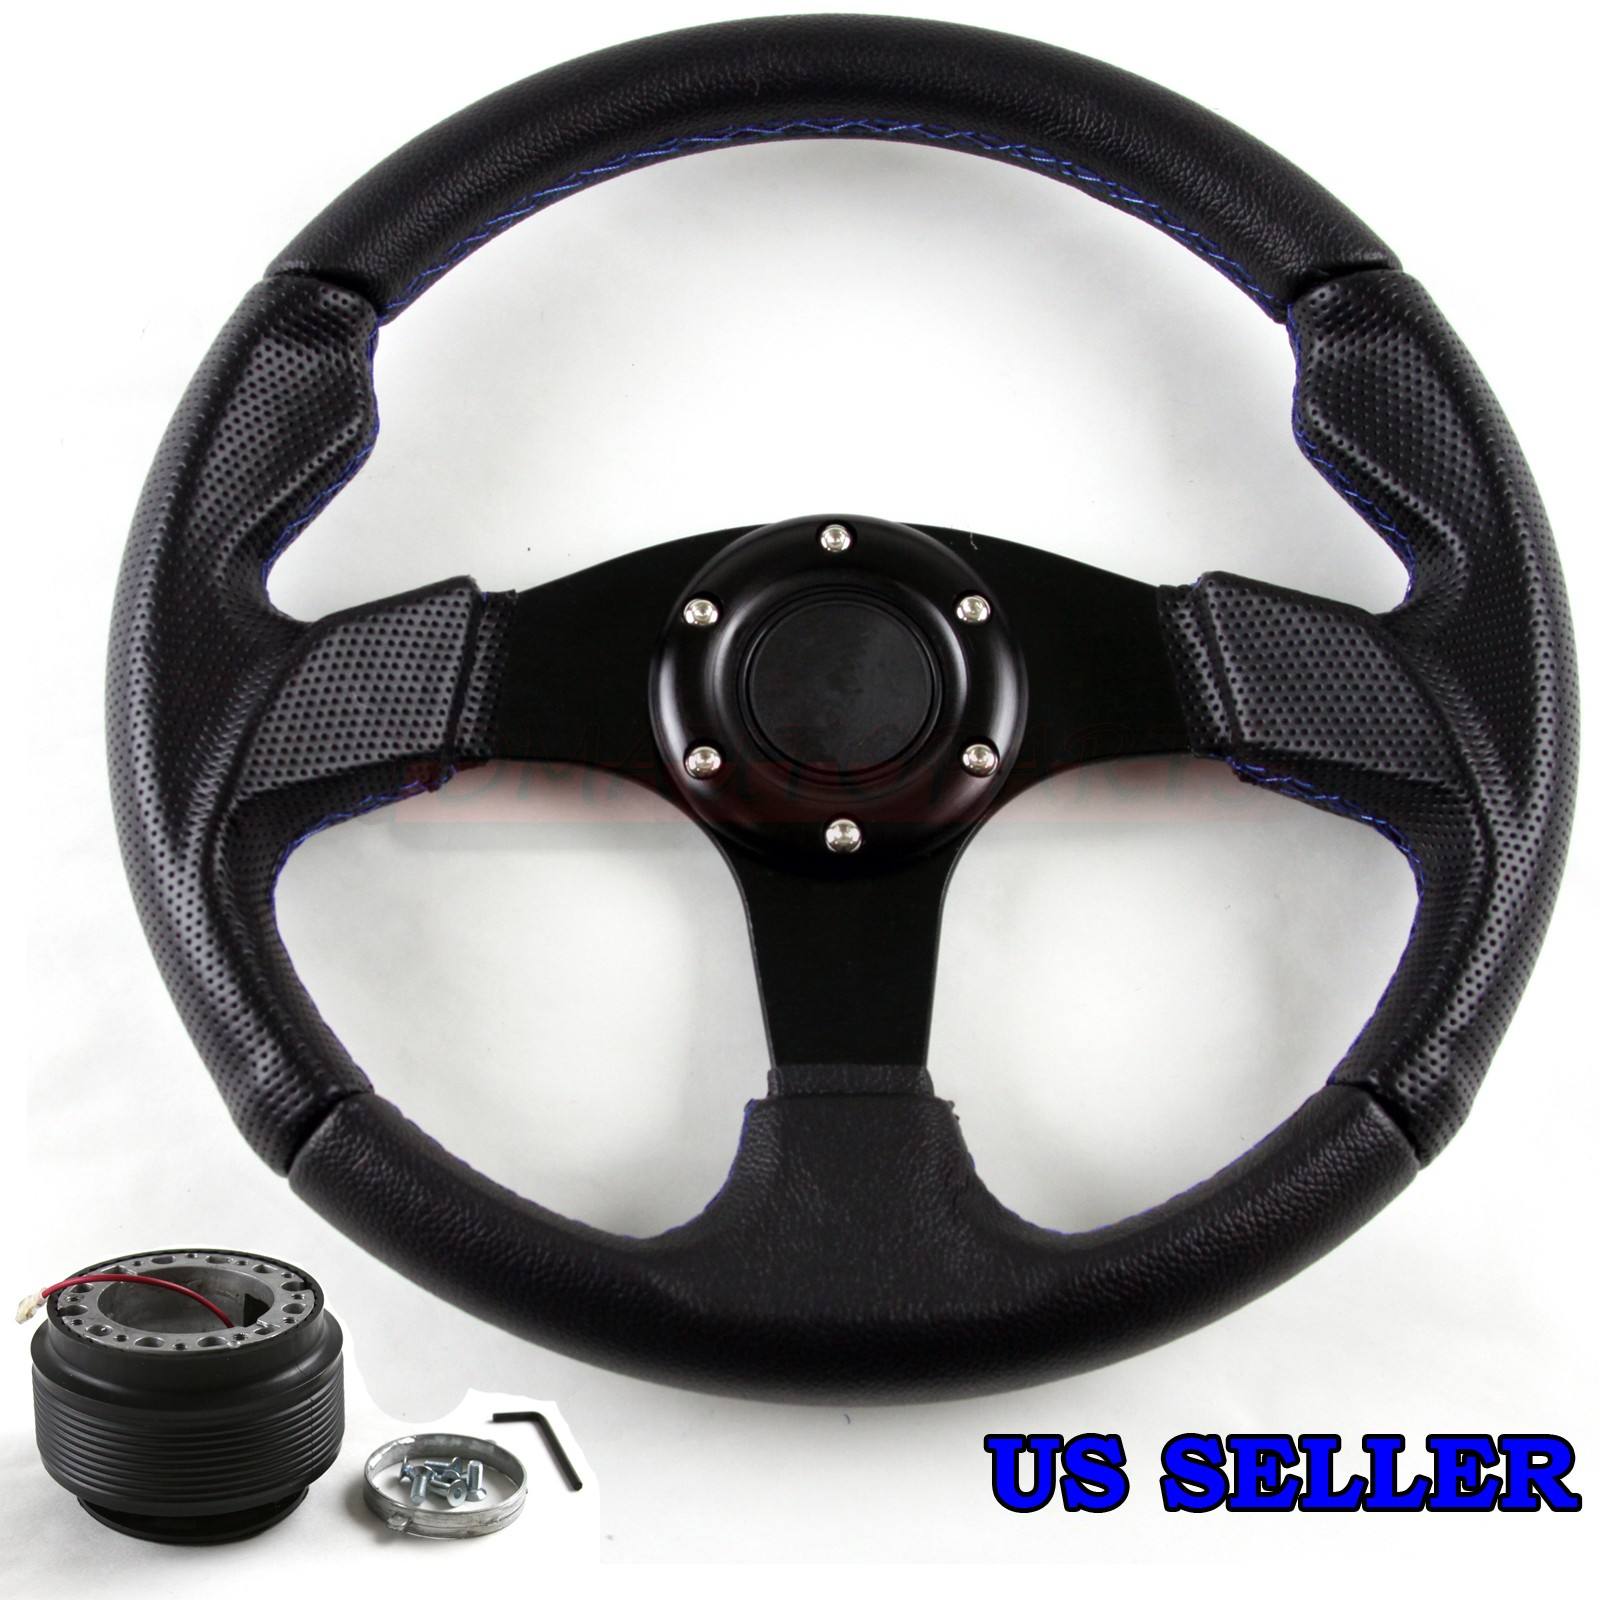 FOR ACURA RSX DC MM BLUE STITCH PVC RACING STEERING WHEEL - Acura rsx steering wheel